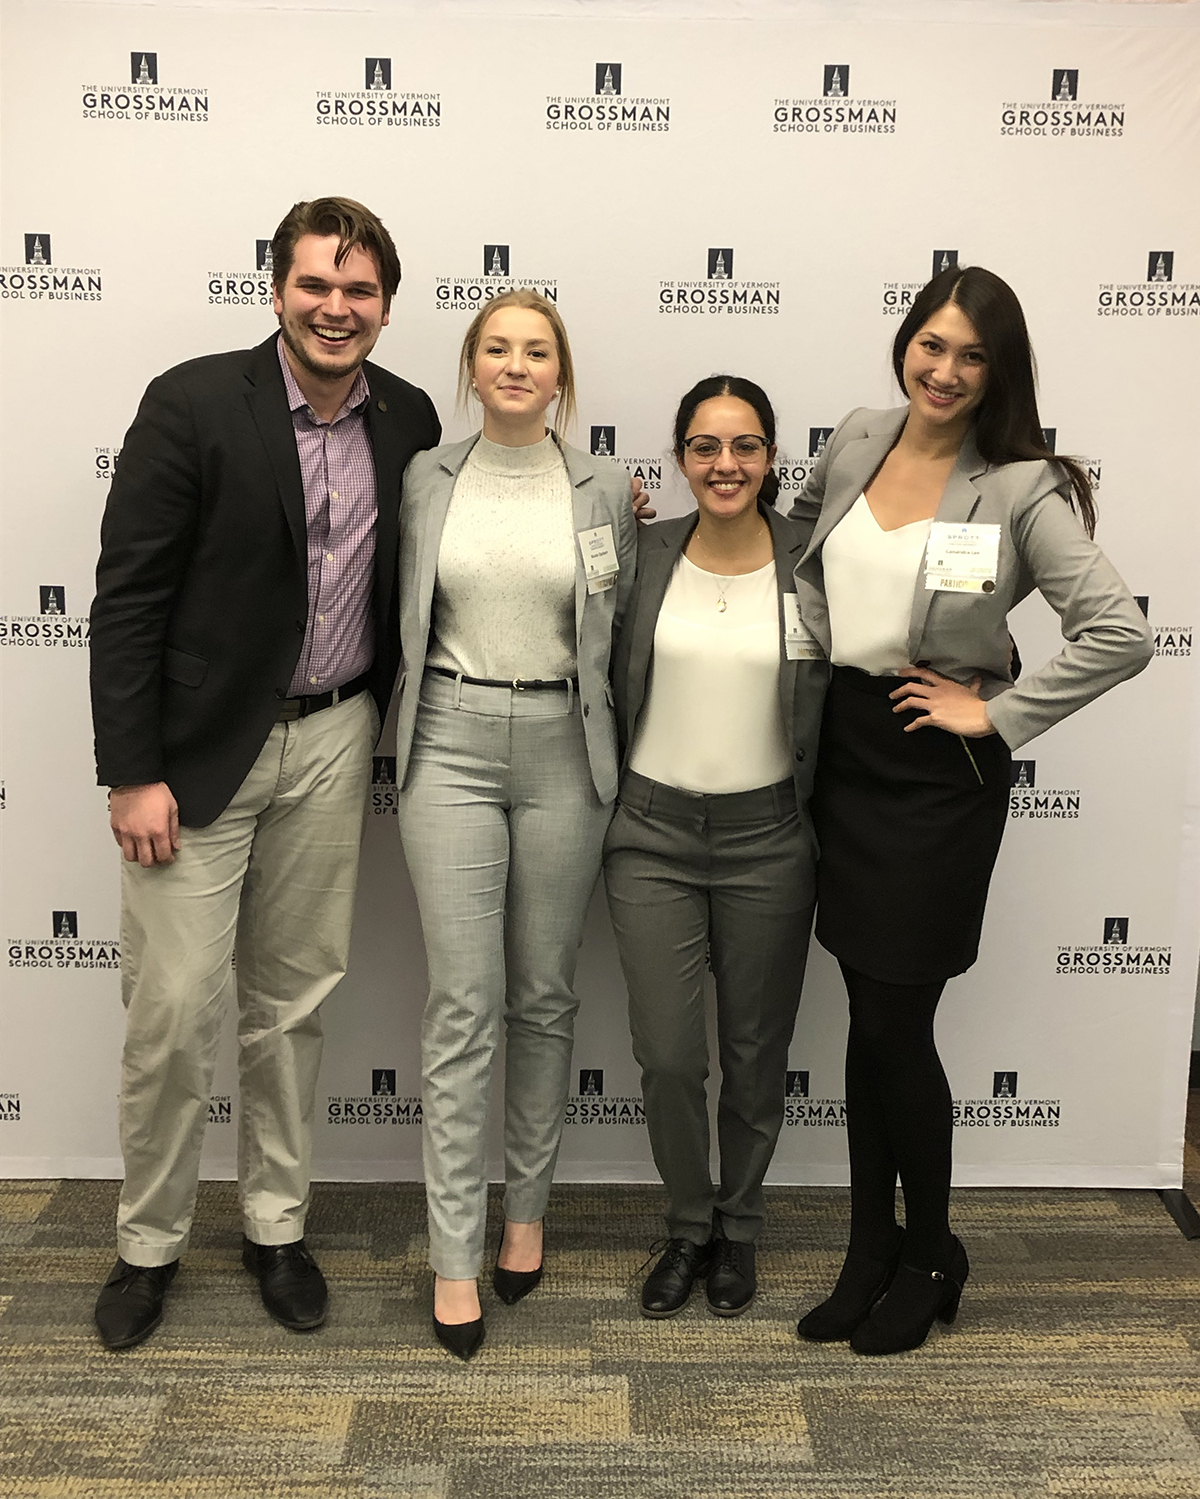 Coach Liam Gravely pictured with Sprott team members Nicole Opsteen, Hala Saoudi, and Cassandra Lee, at the University of Vermont's Global Family Enterprise Case Competition.